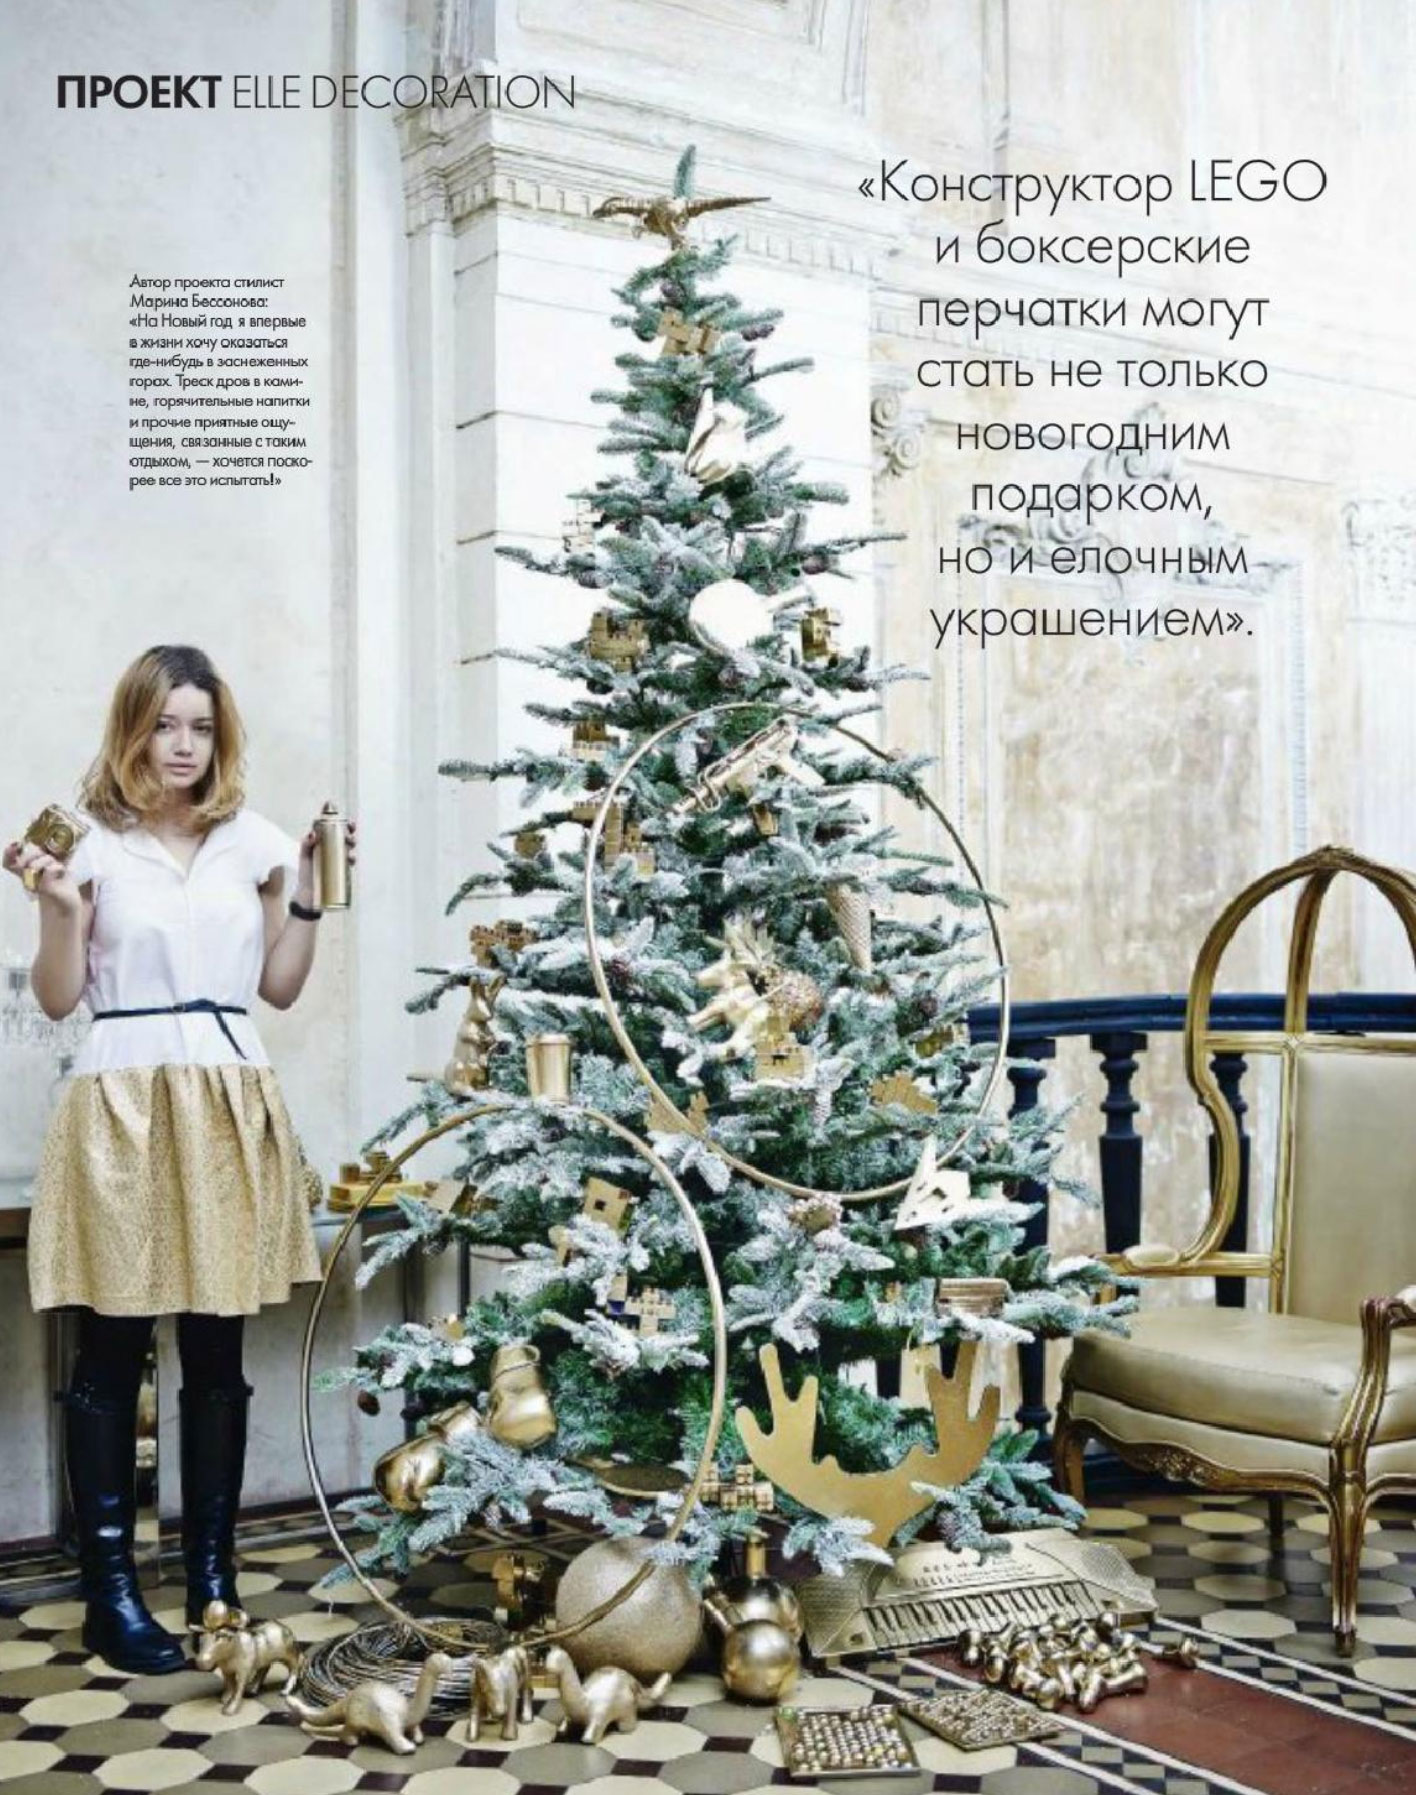 designer kitchen colors remodeling tips christmas homes - elle decoration russia december 2013 ...